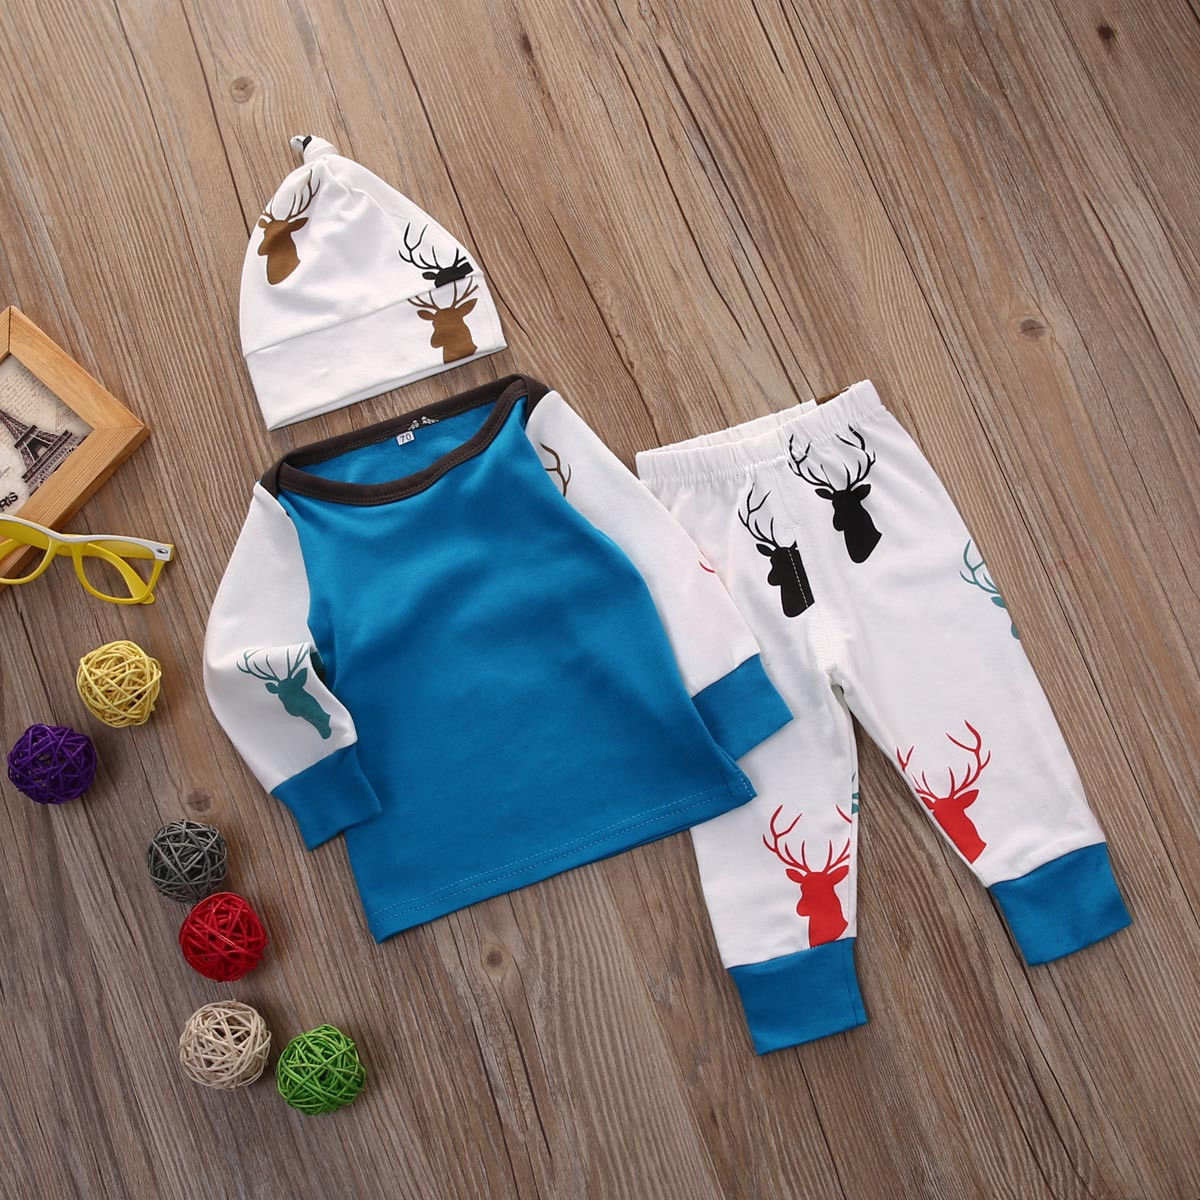 3Pcs Newborn Infant Baby Boys Girls Clothing Set 3pcs Top Deer Pants Leggings Hat Cotton Clothes Outfit Set Baby Boy Girl emotion moms 29pcs set newborn baby girls clothes cotton 0 6months infants baby girl boys clothing set baby gift set without box